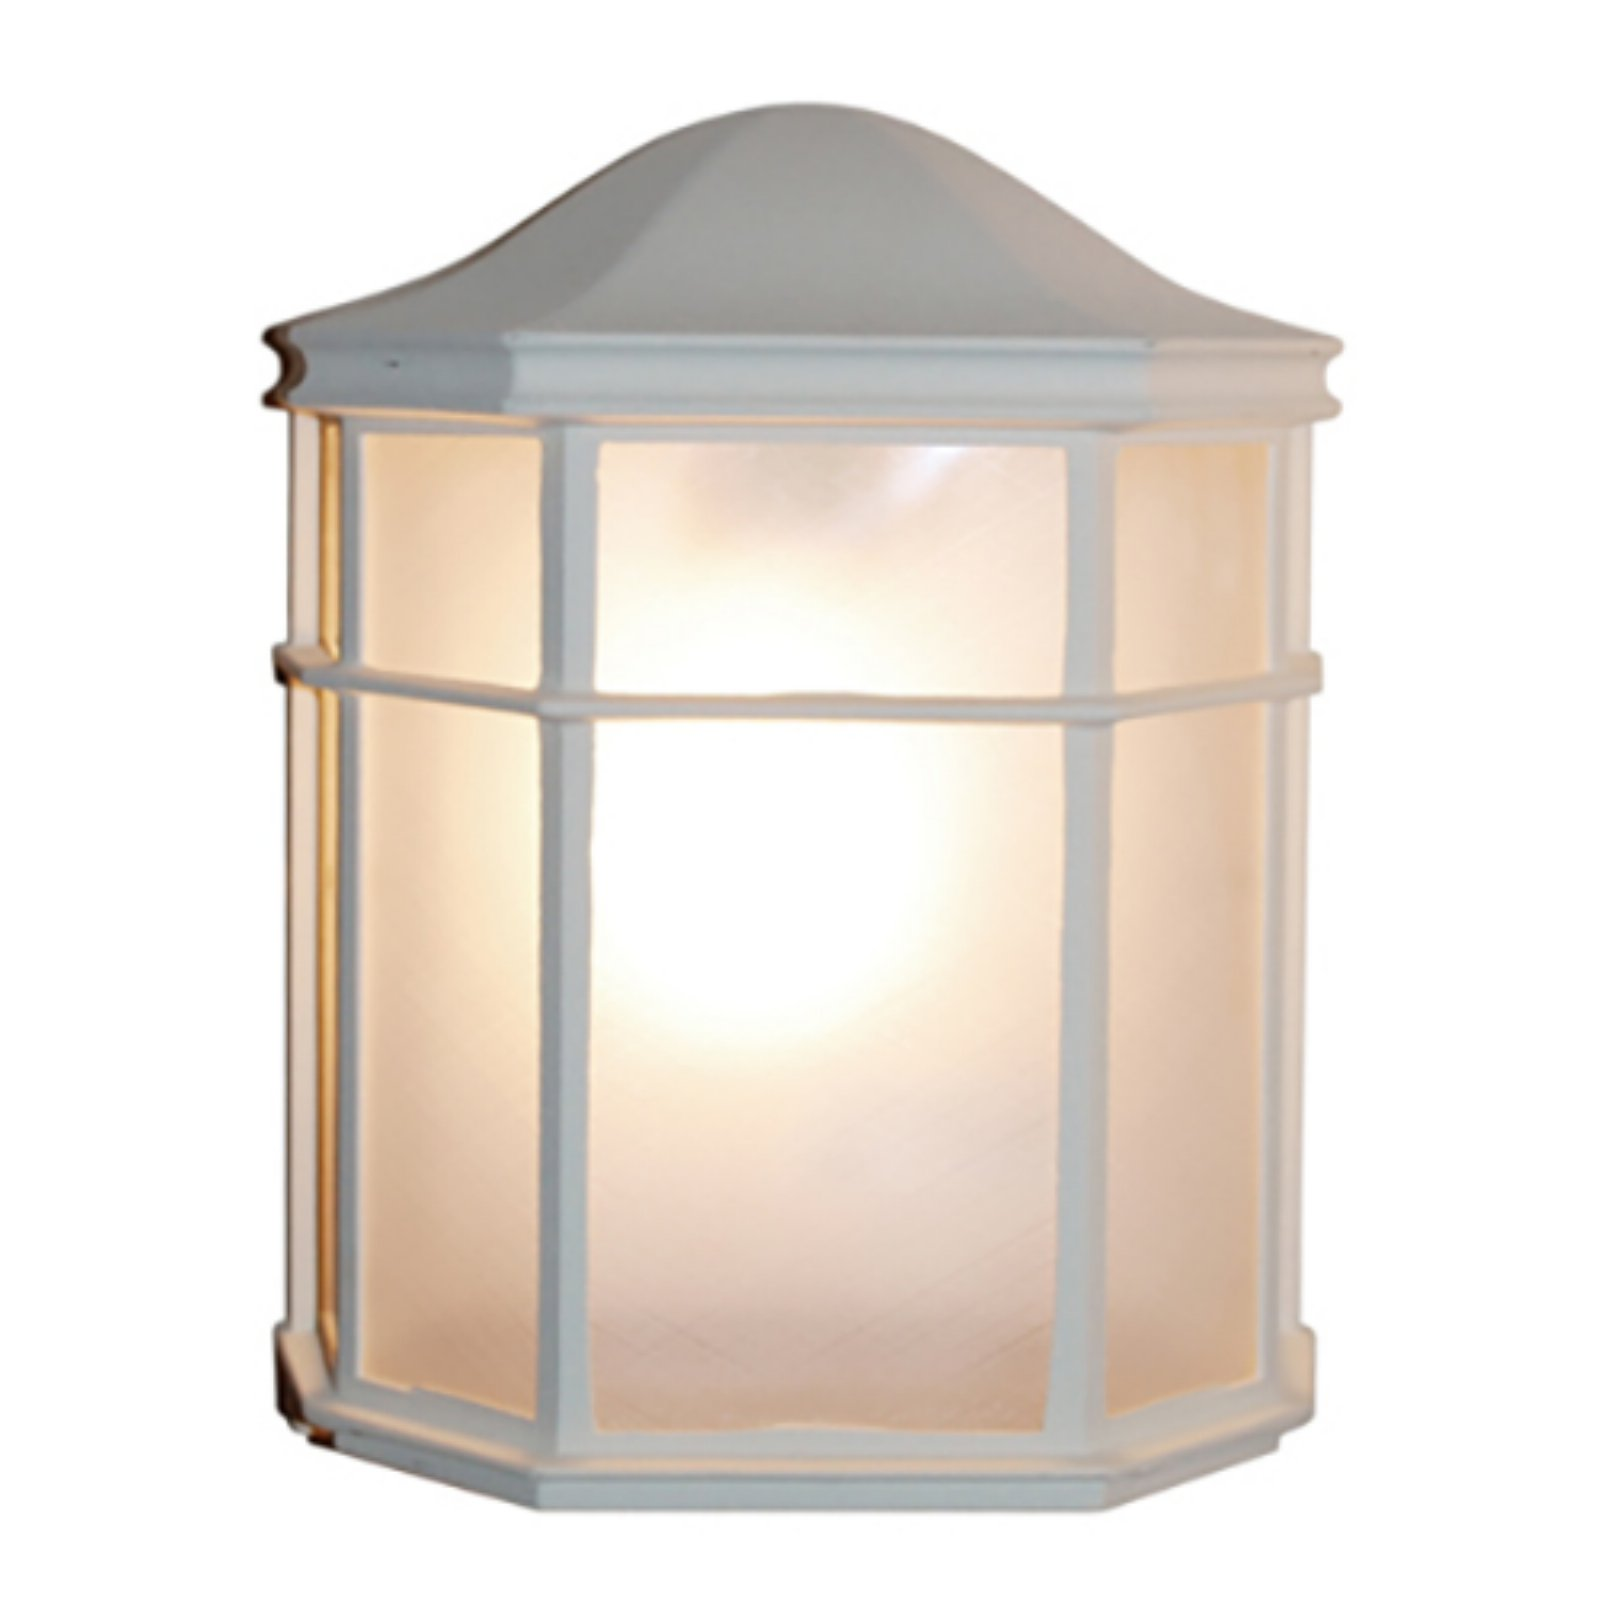 Trans Globe Lighting Andrews 4484 WH Outdoor Pocket Lantern